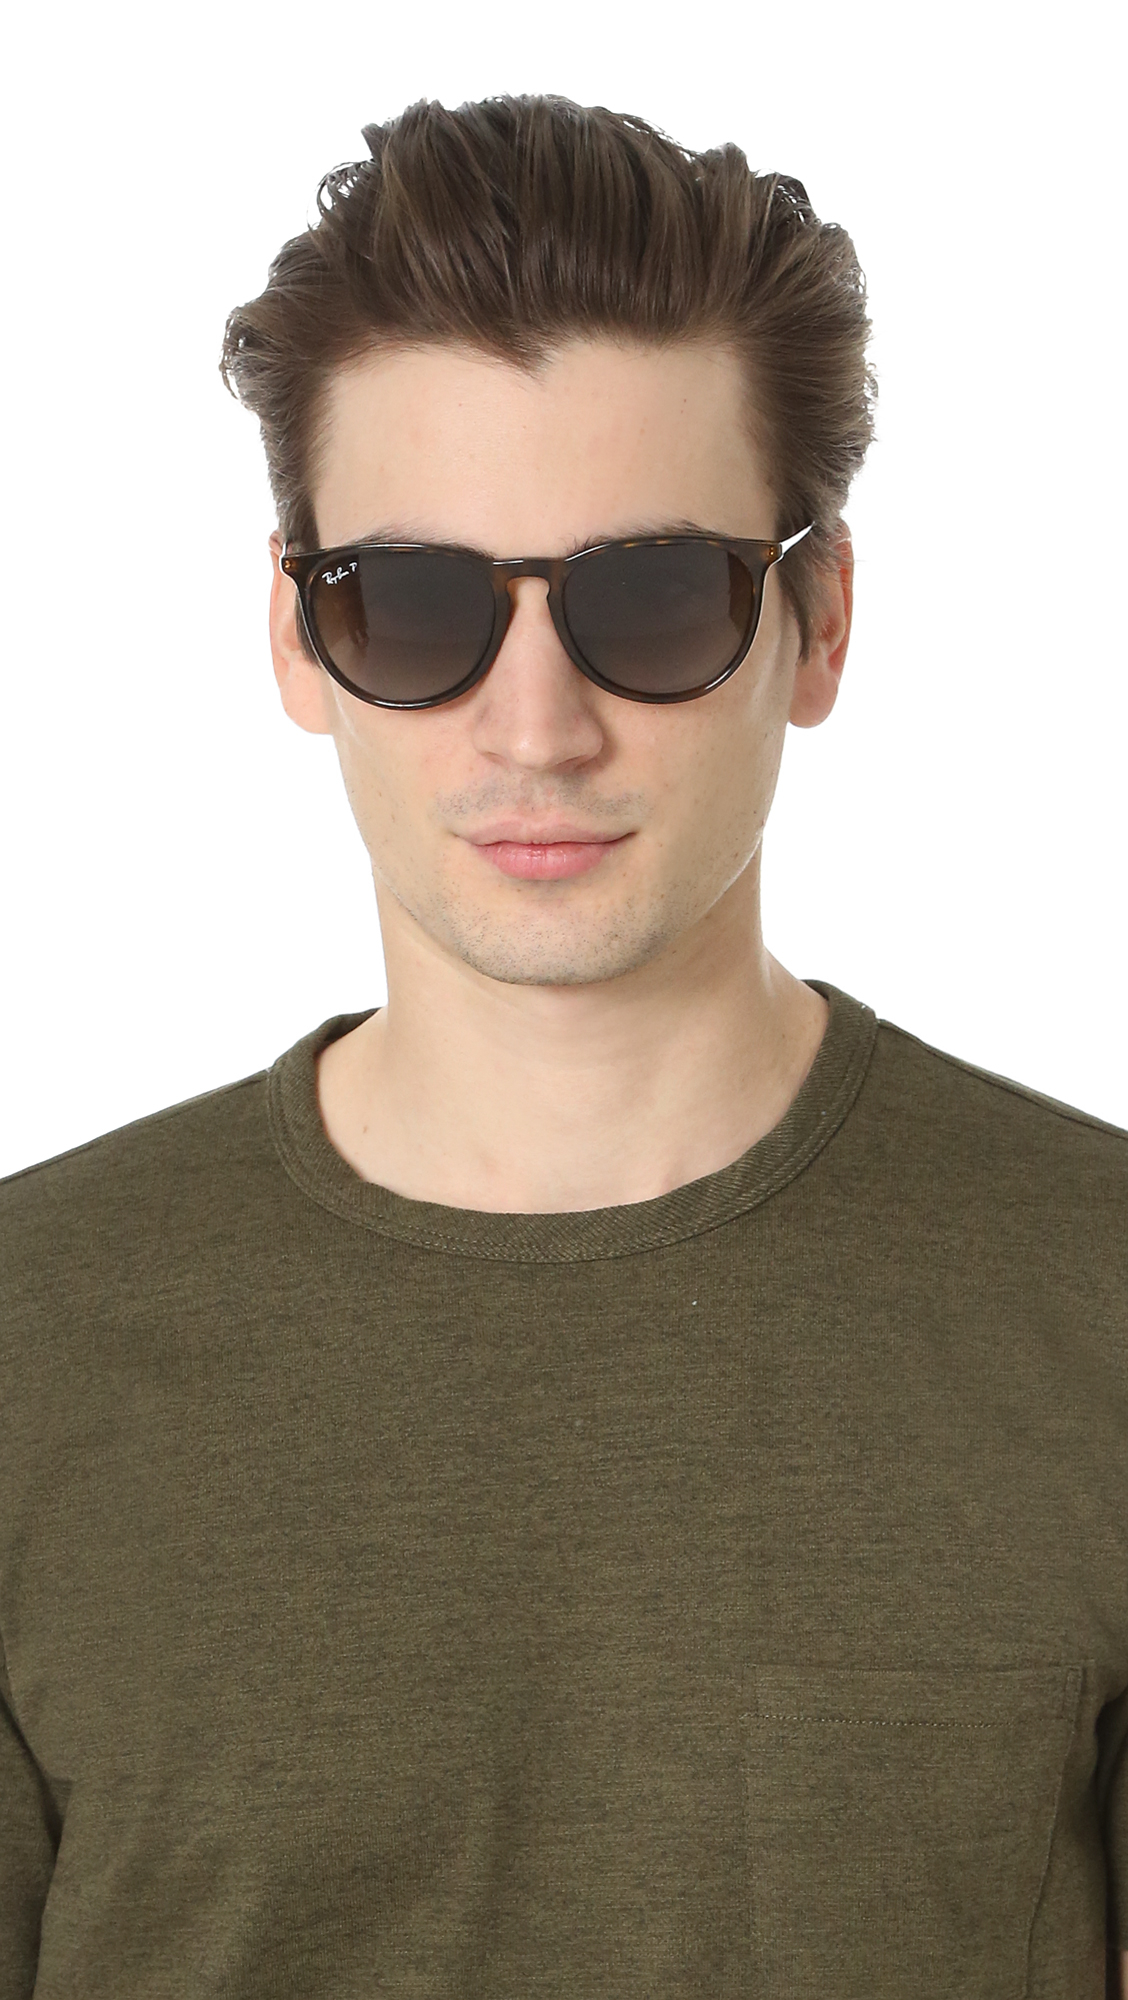 6e1379bd3c8a1 Ray-Ban Full Fit Round Sunglasses in Brown for Men - Lyst